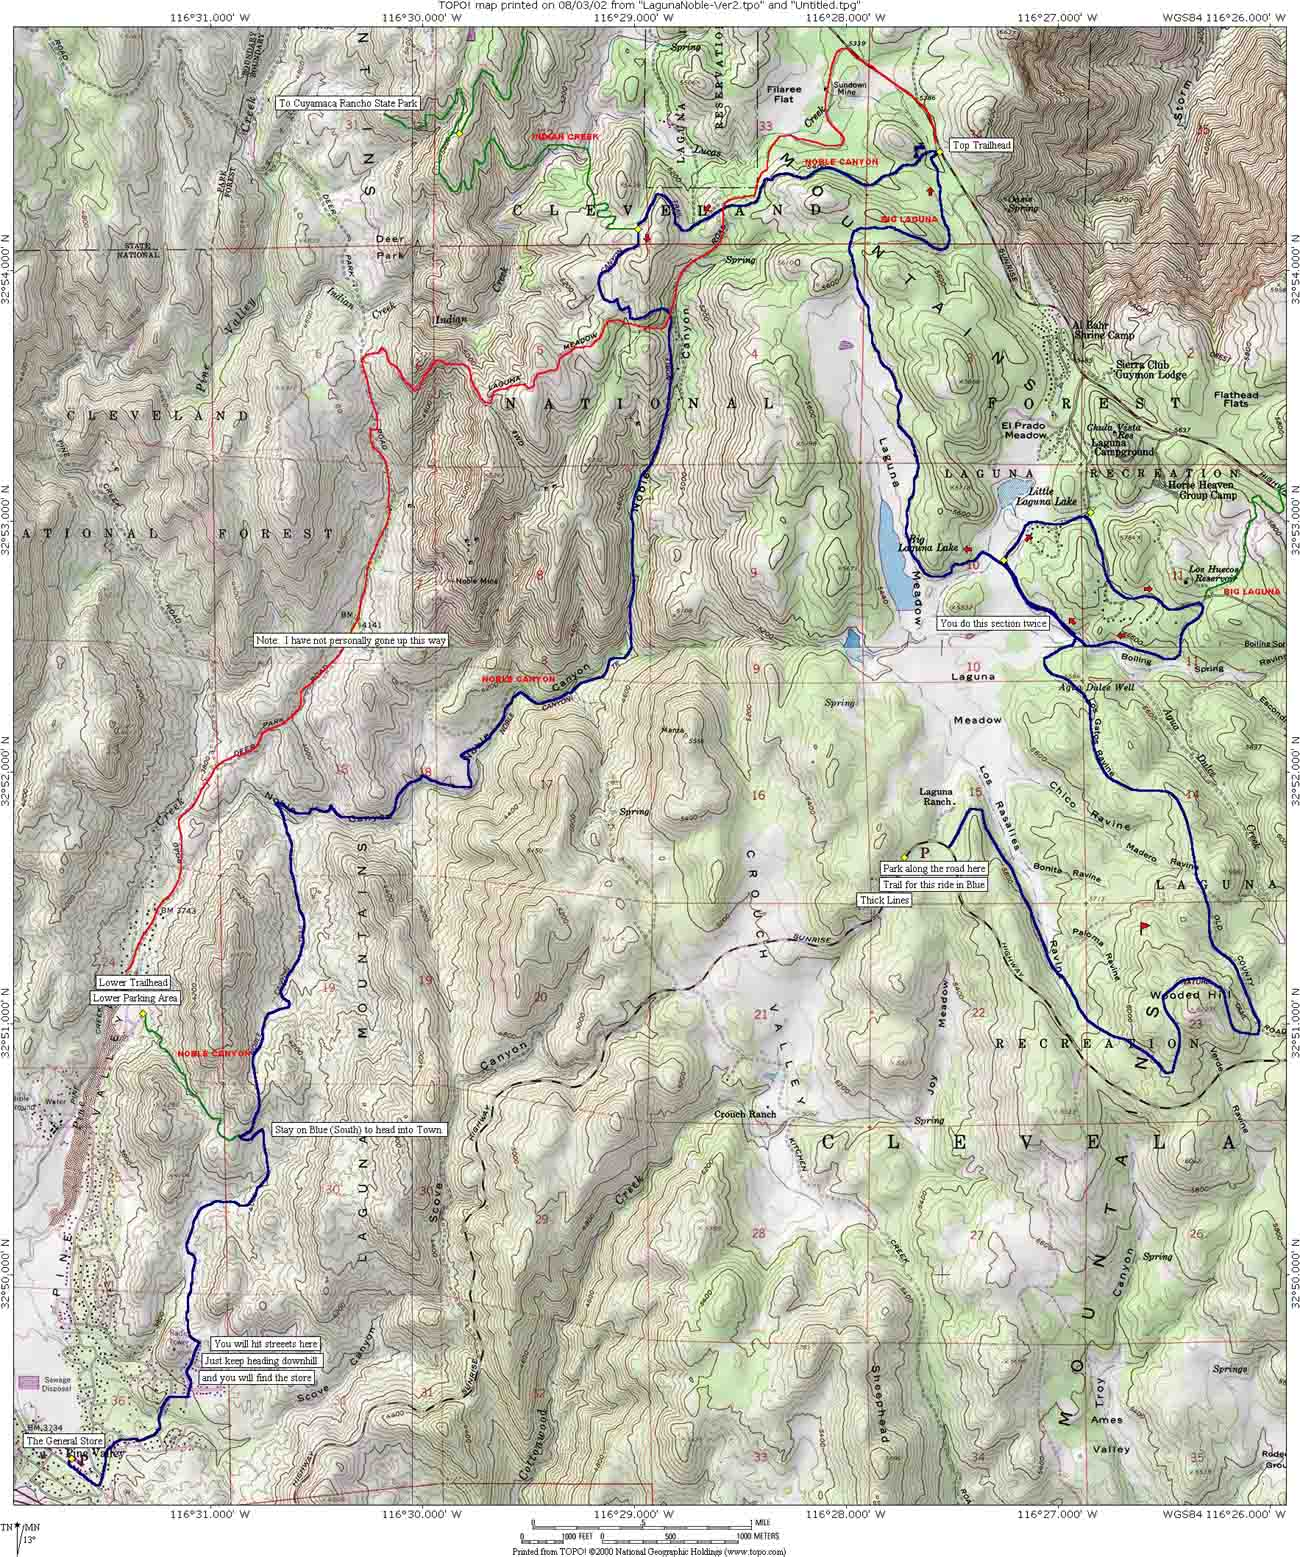 mount laguna jewish singles Bay area jewish singles hiking club | home here is a small sample of past hiking club events in different regions of corner of laguna st and.